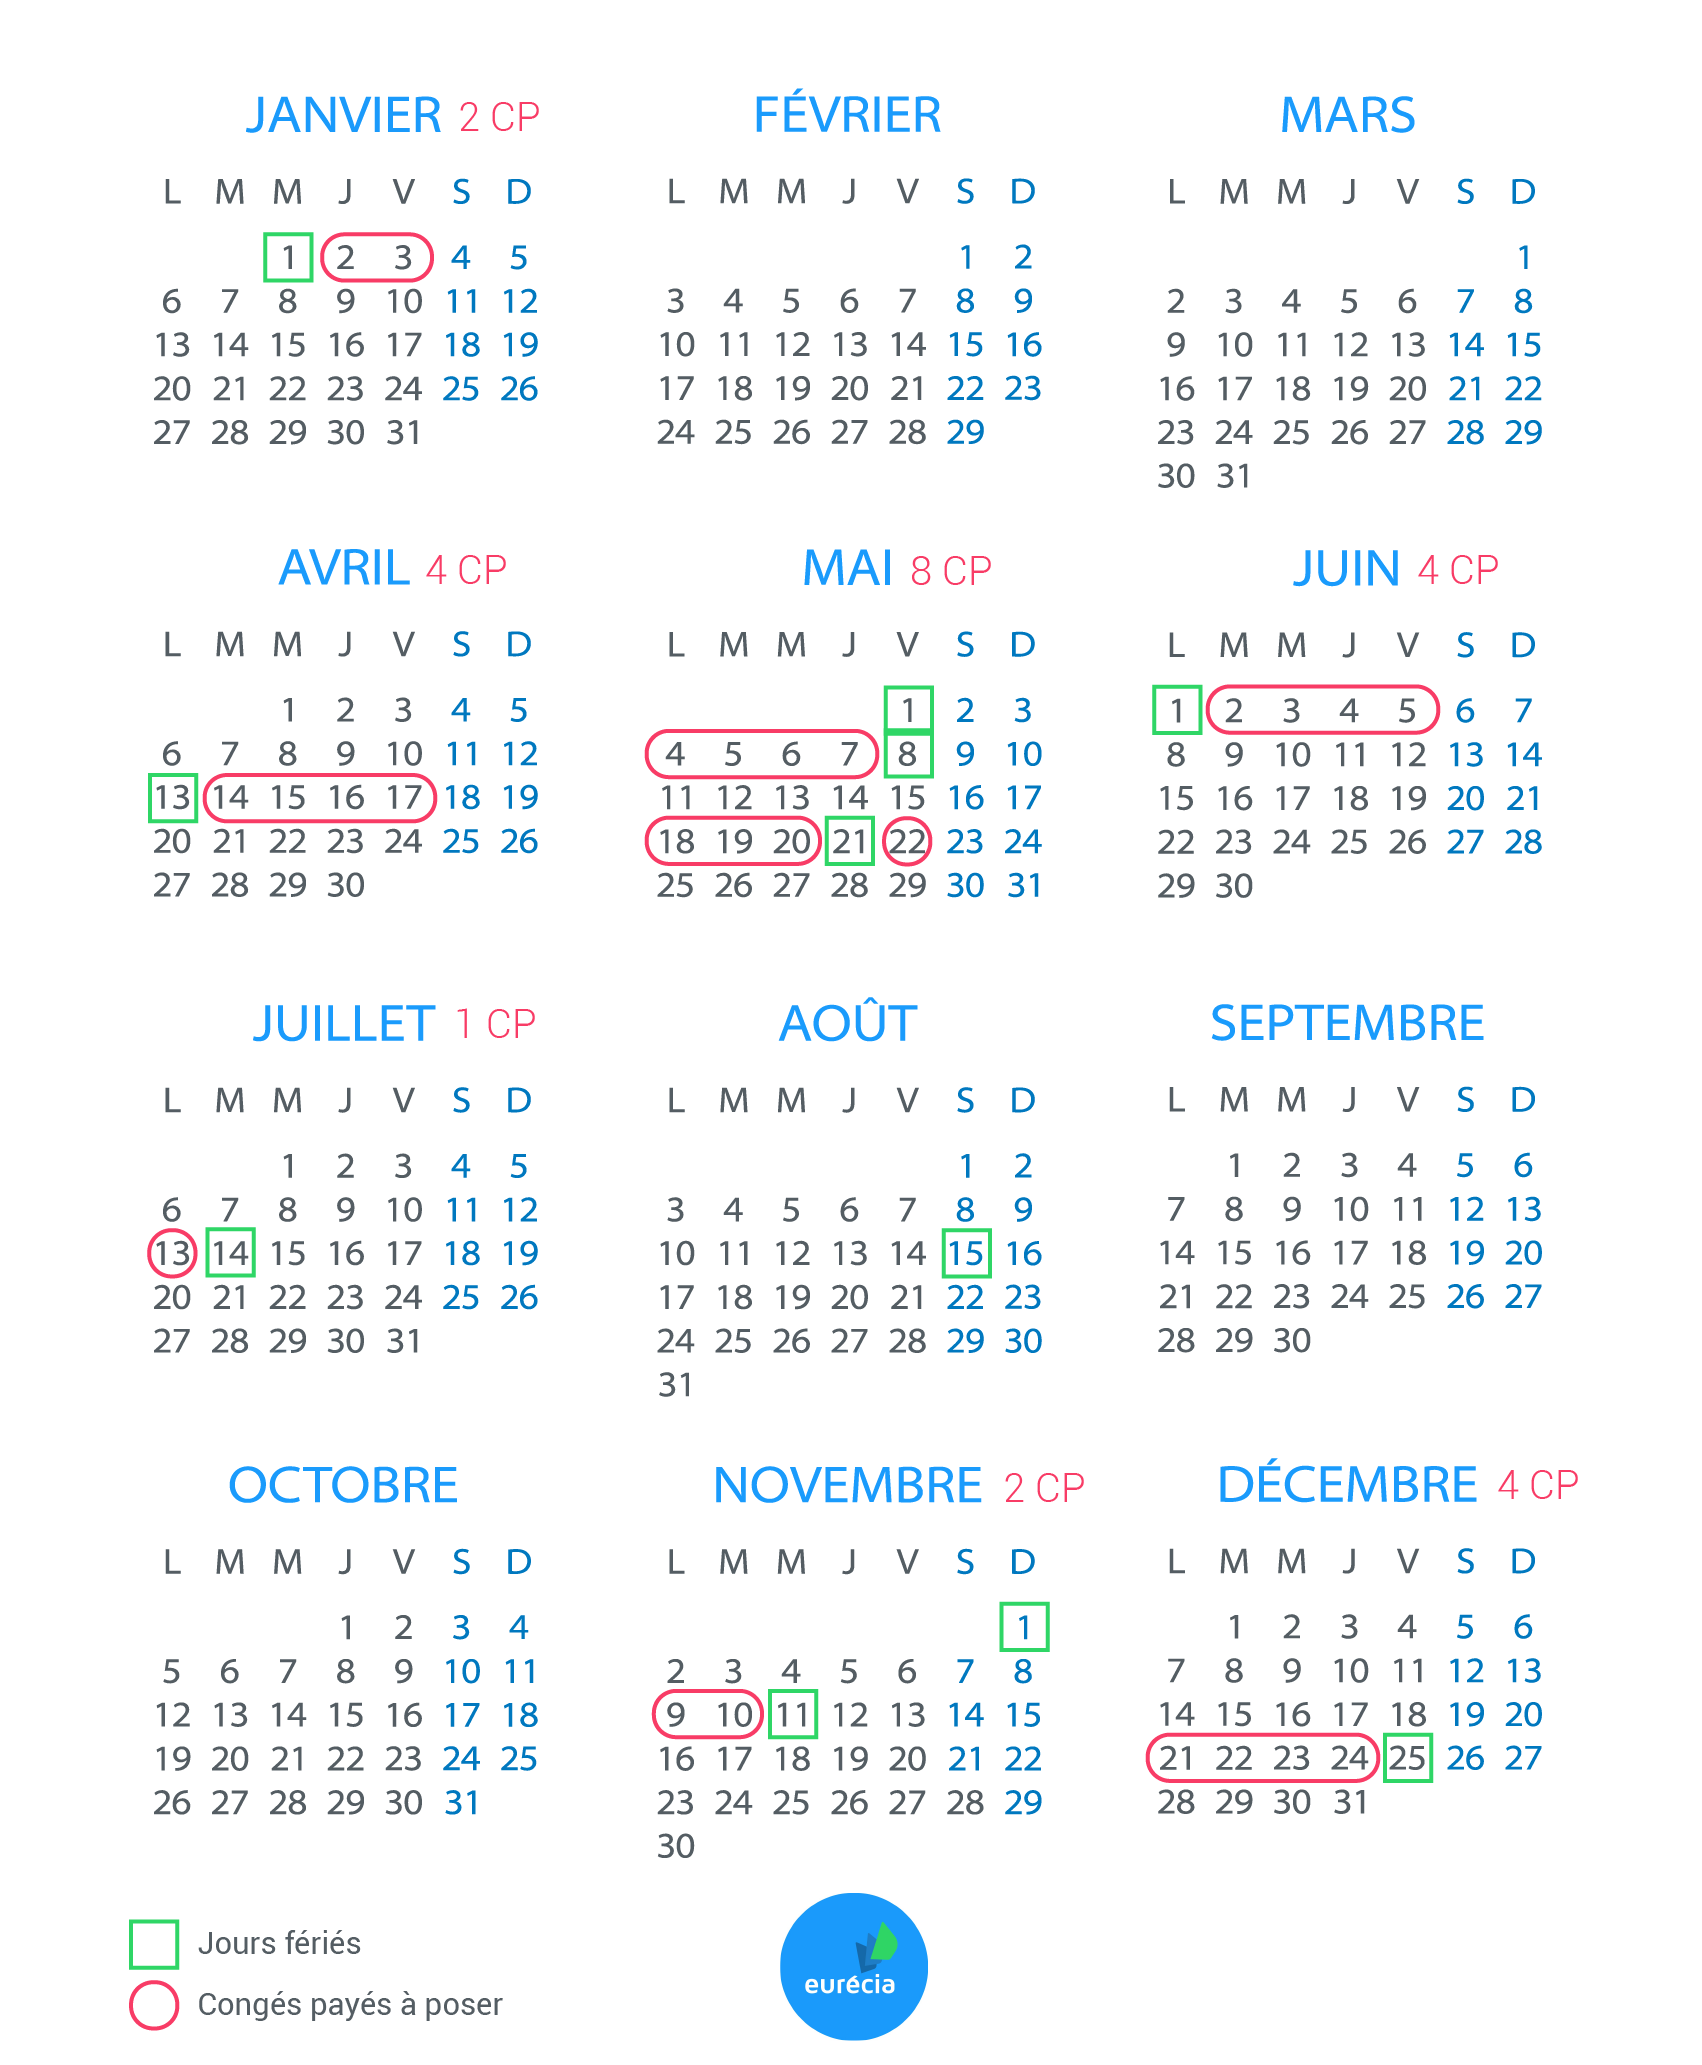 calendrierjoursferies2020-cp-eurecia.png